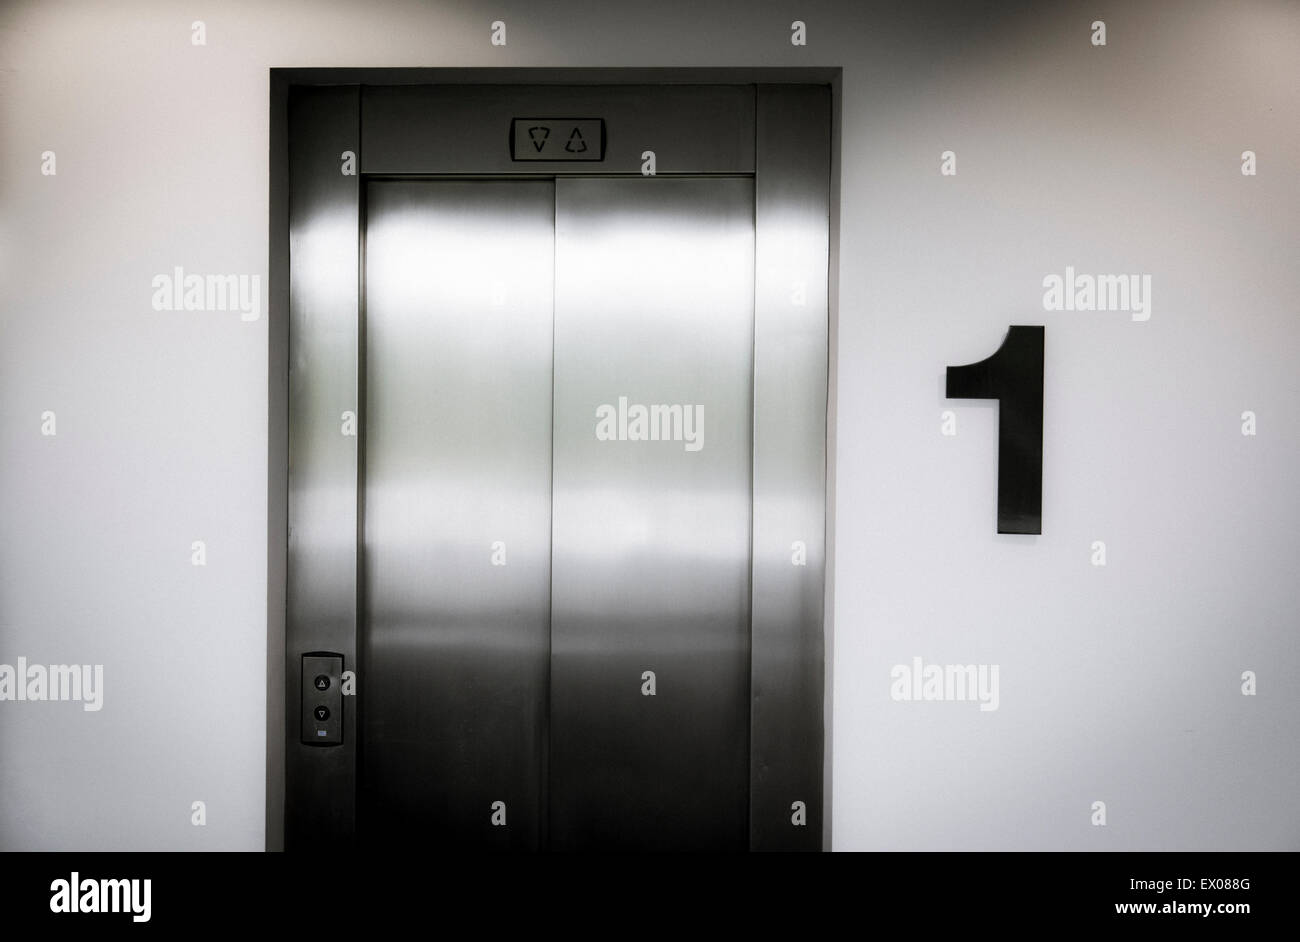 A lift door on the first floor of an office building - Stock Image